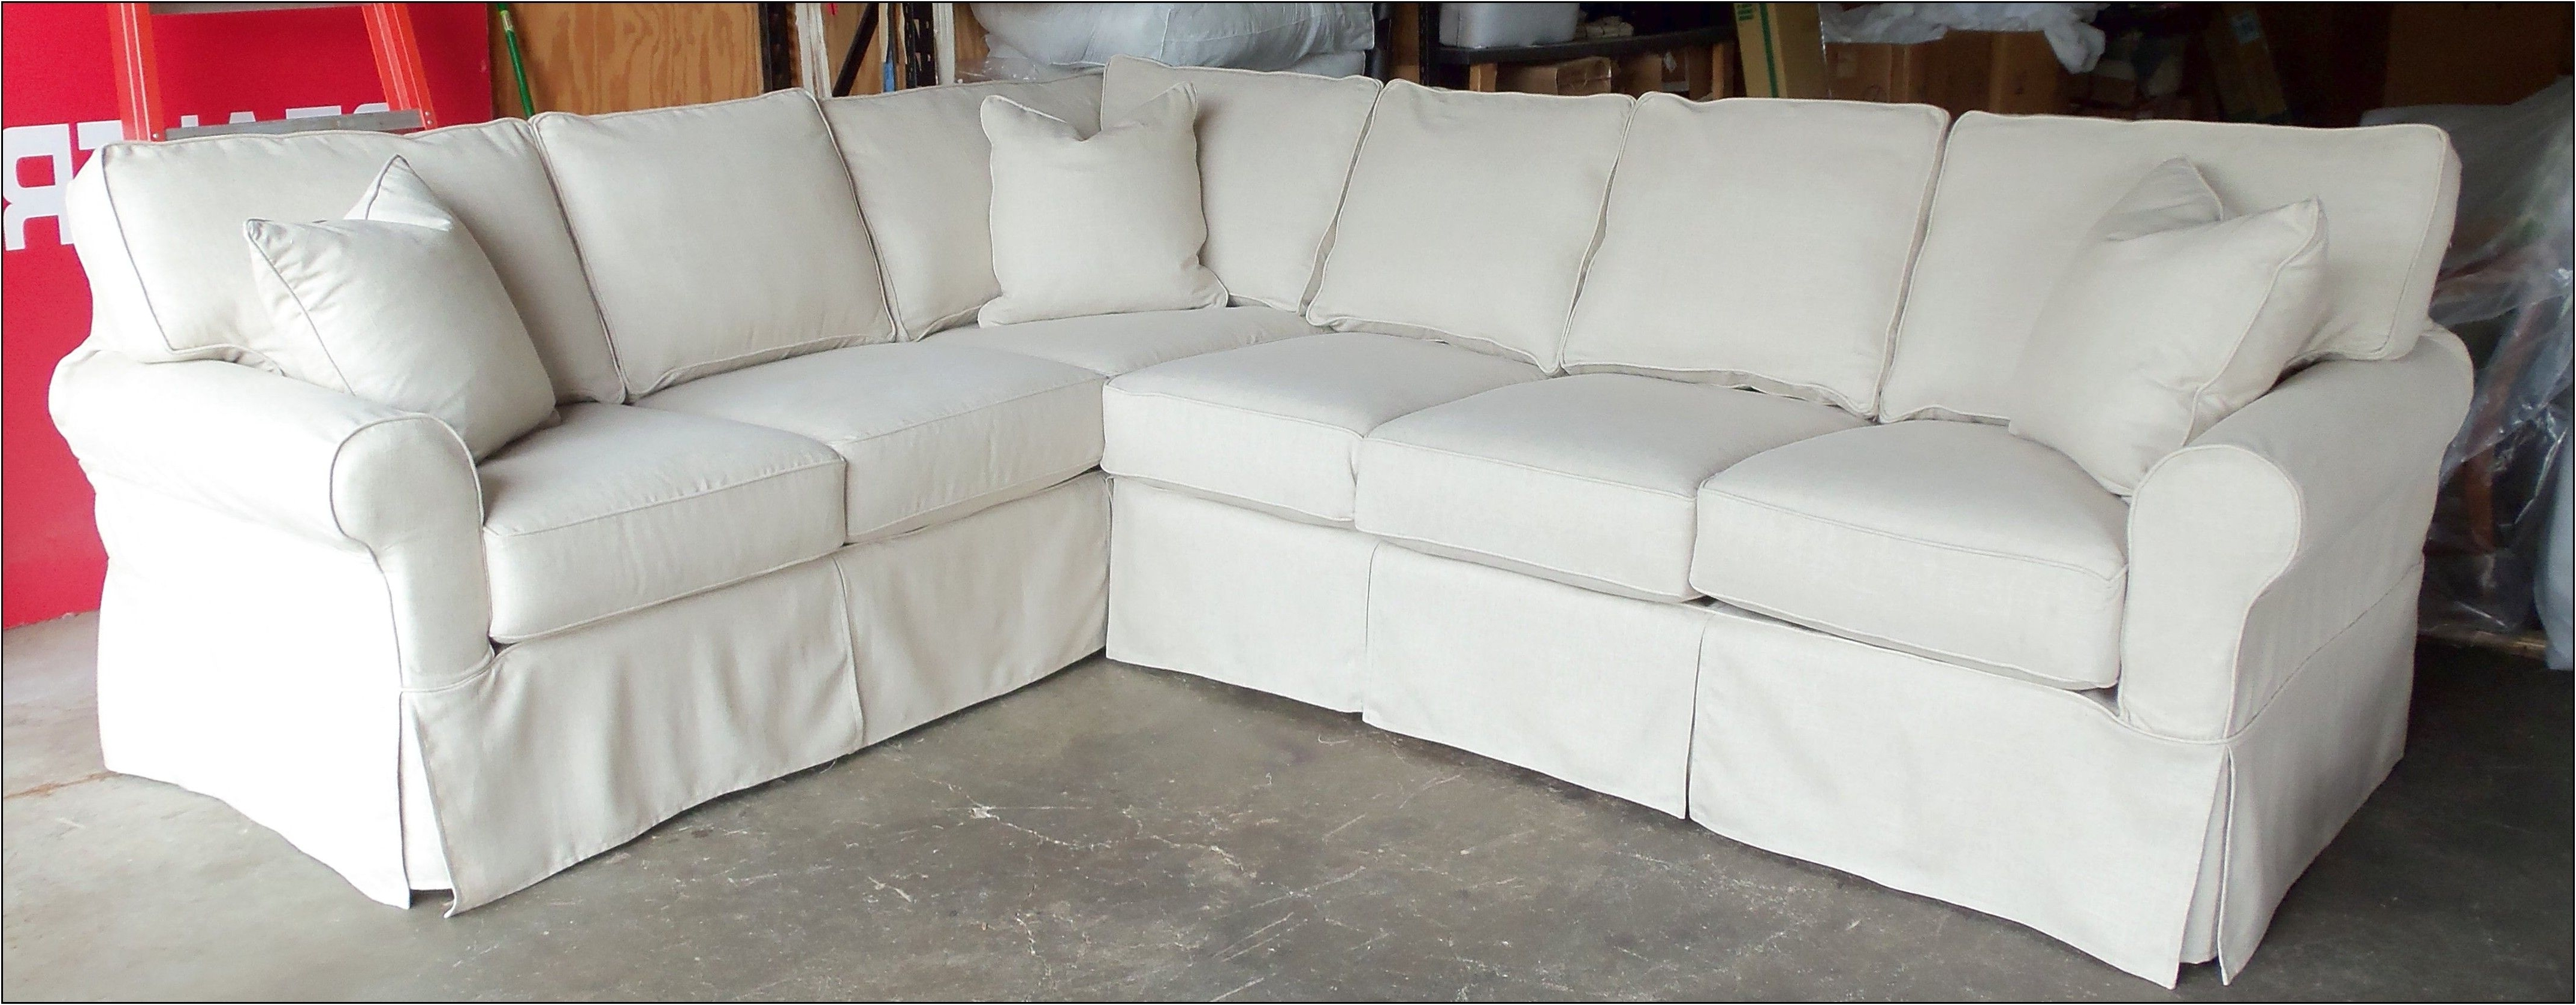 Slipcovers For Sectionals With Chaise Within Recent Cool Sectional Couch Cover , Best Sectional Couch Cover 72 For (View 15 of 15)